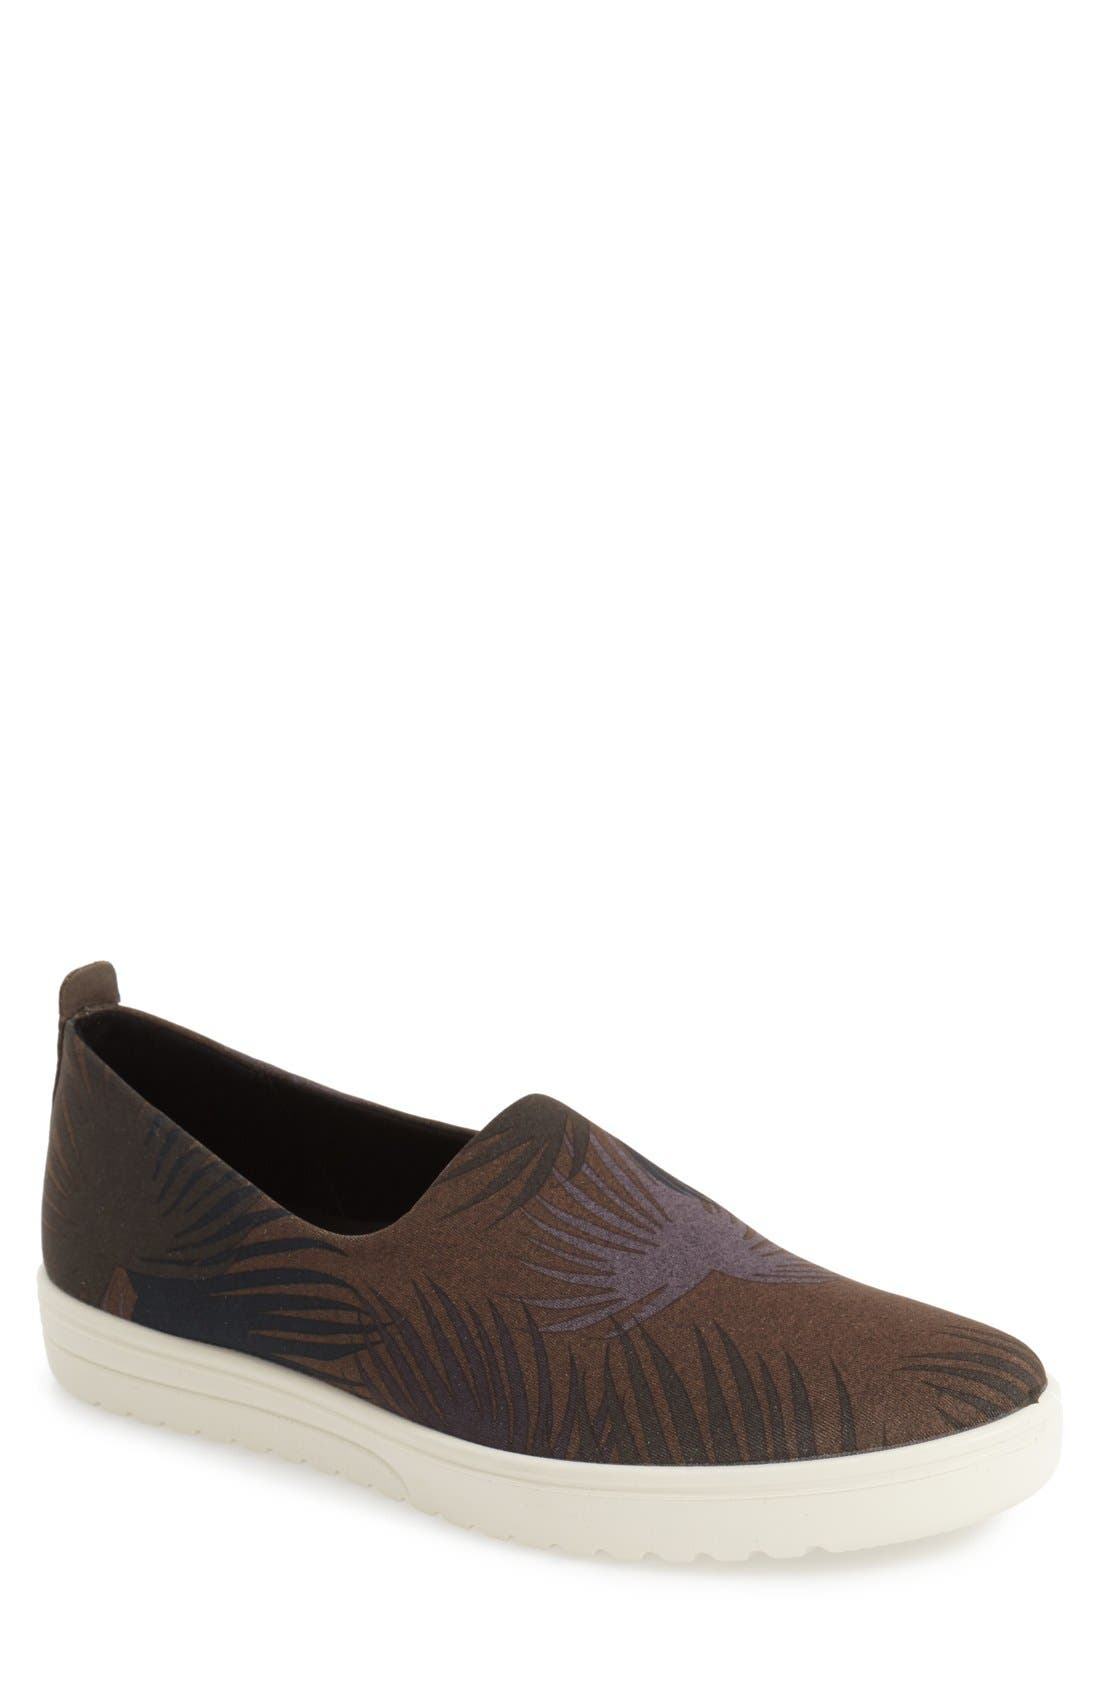 'Fara' Slip-On Sneaker,                             Main thumbnail 4, color,